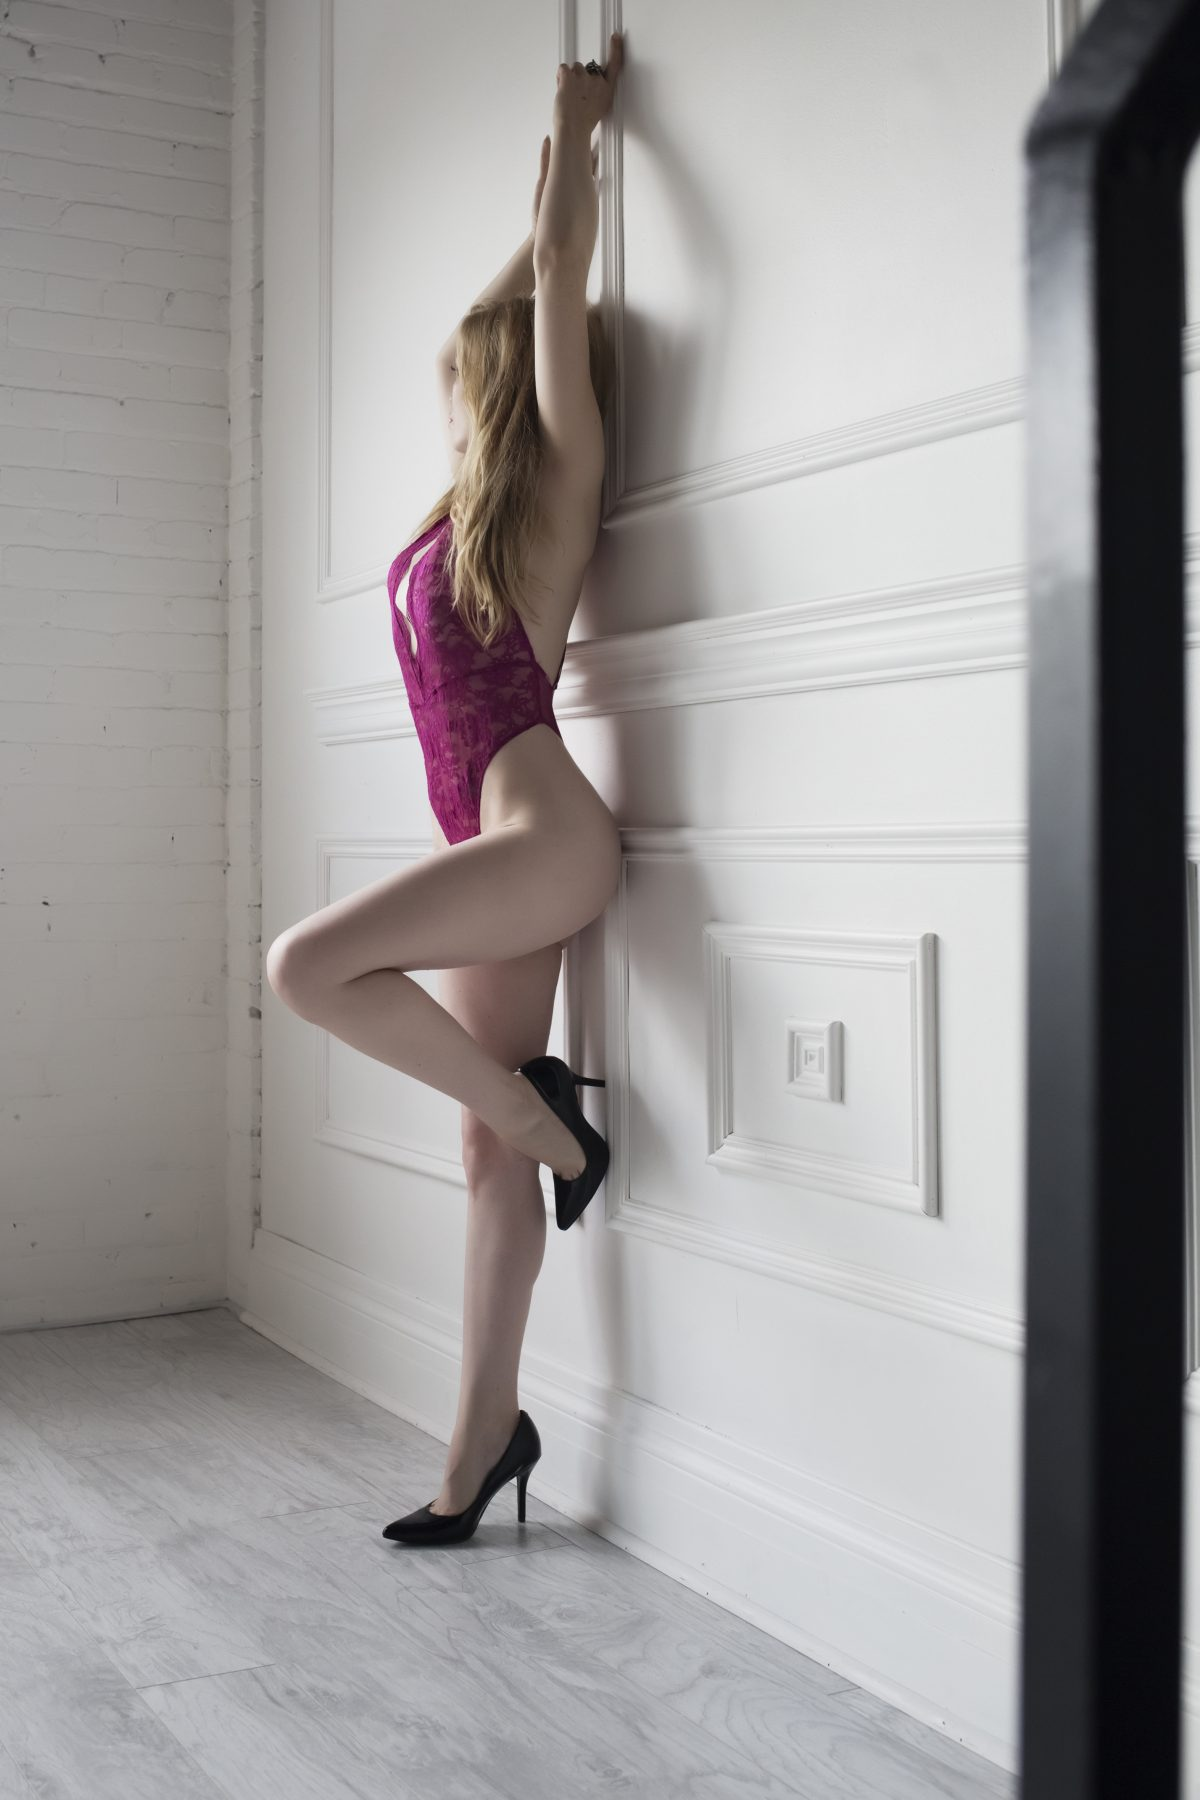 Toronto escorts companion upscale Ella Duo Couple-friendly Young Slender Petite Breasts Natural Blonde European Tattoos None